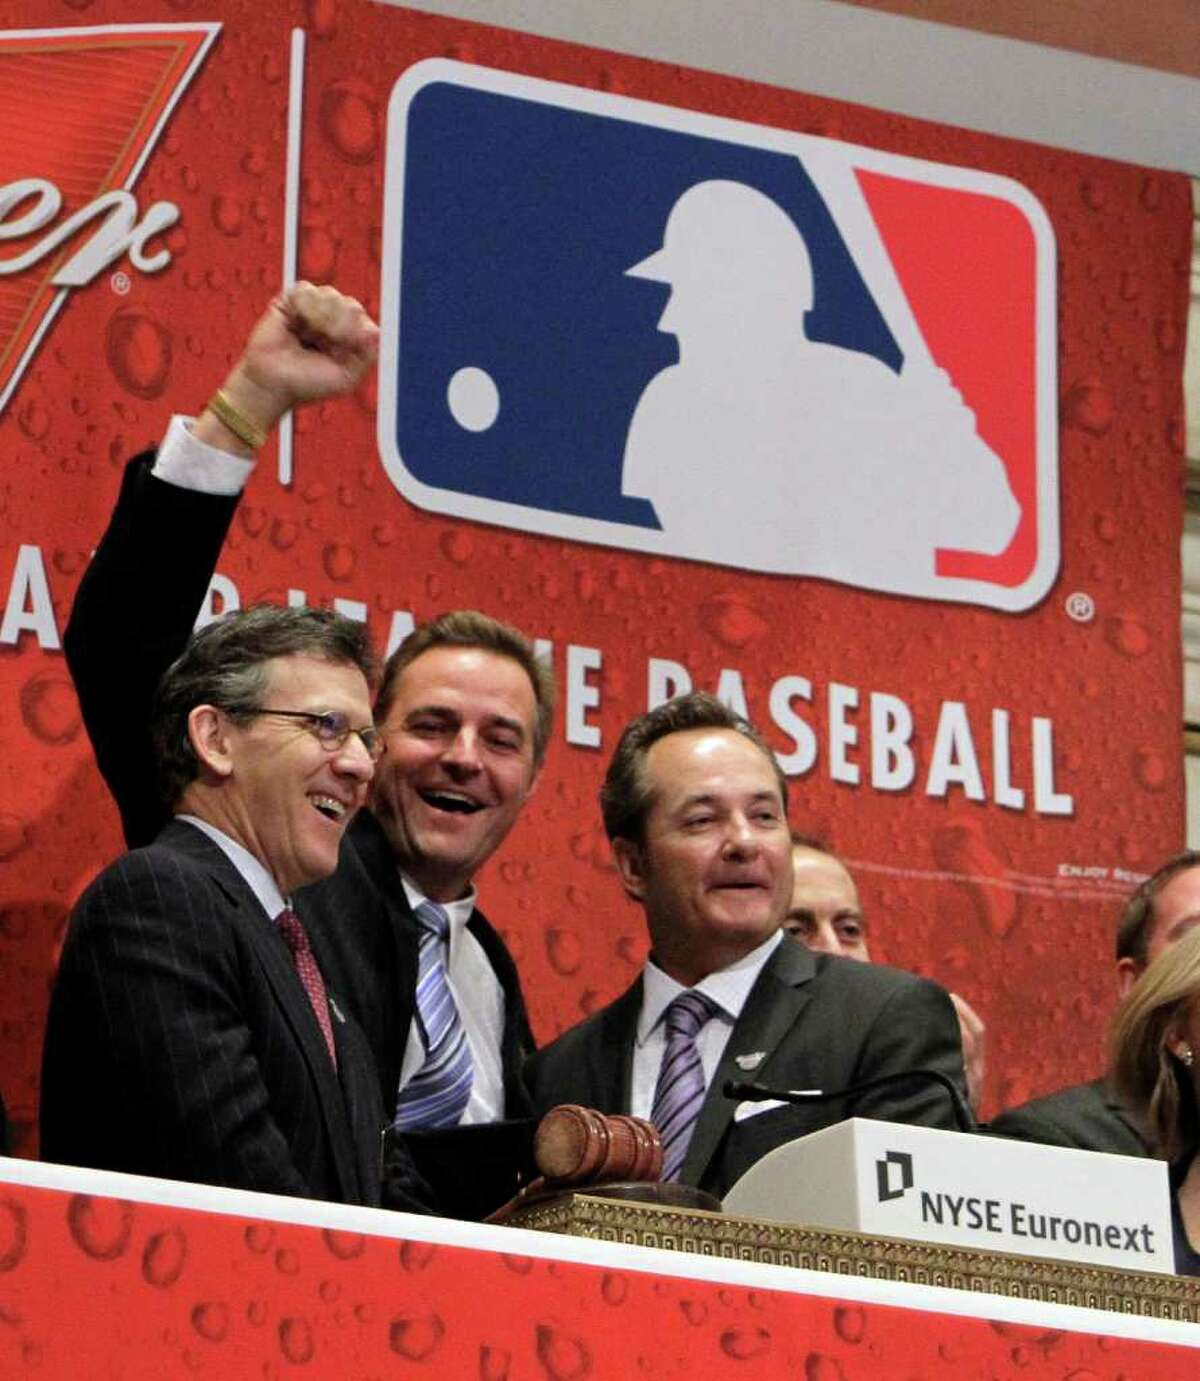 Tim Brosnan, left, with Major League Baseball, former major league pitcher Al Leiter, center, and Mark Wright, with Budweiser, ring the opening bell of the New York Stock Exchange in observance of baseball's opening day, Thursday, March 31, 2011.